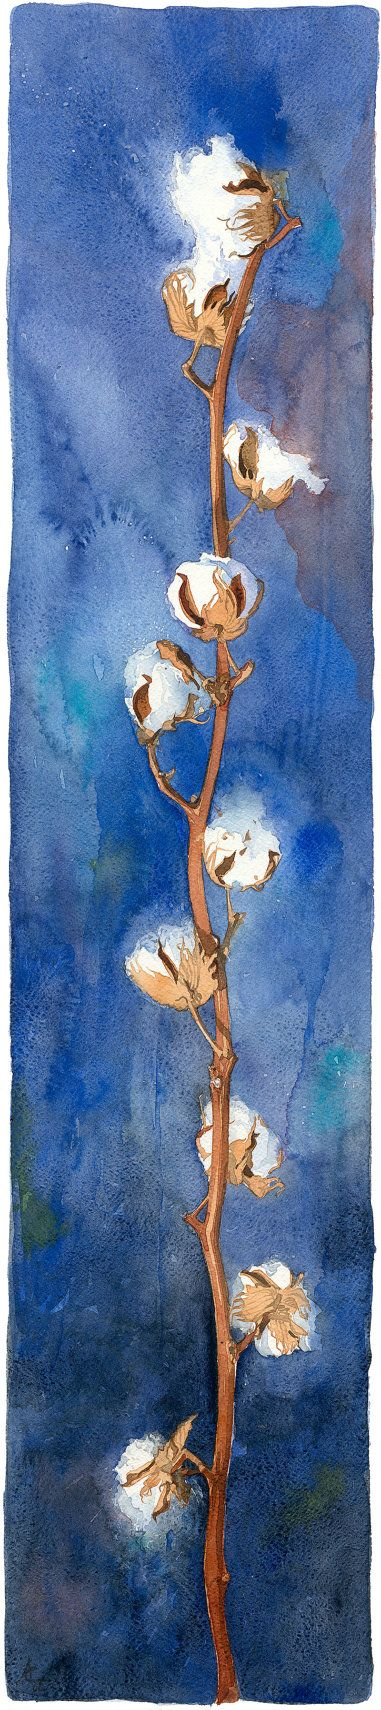 'Cotton' - picked cotton all through my childhood. When my daughters were small and we were driving through Georgia, I stopped along the road so they could run through a field of cotton and have that experience...they have never forgotten...